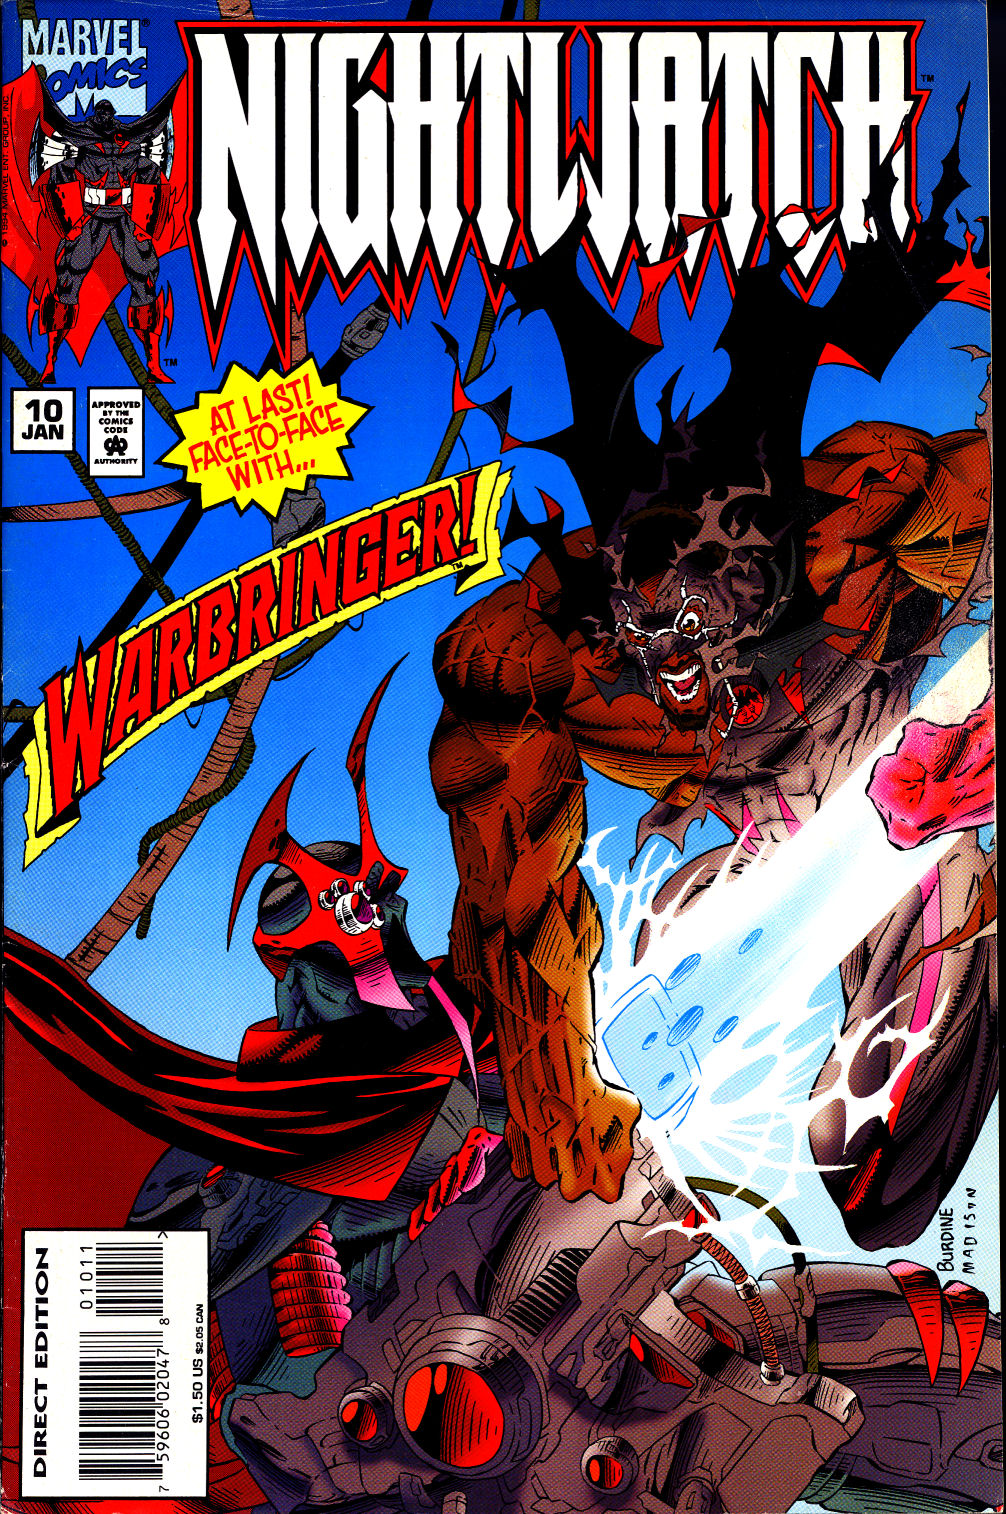 Nightwatch 010 (1995) | Viewcomic reading comics online for